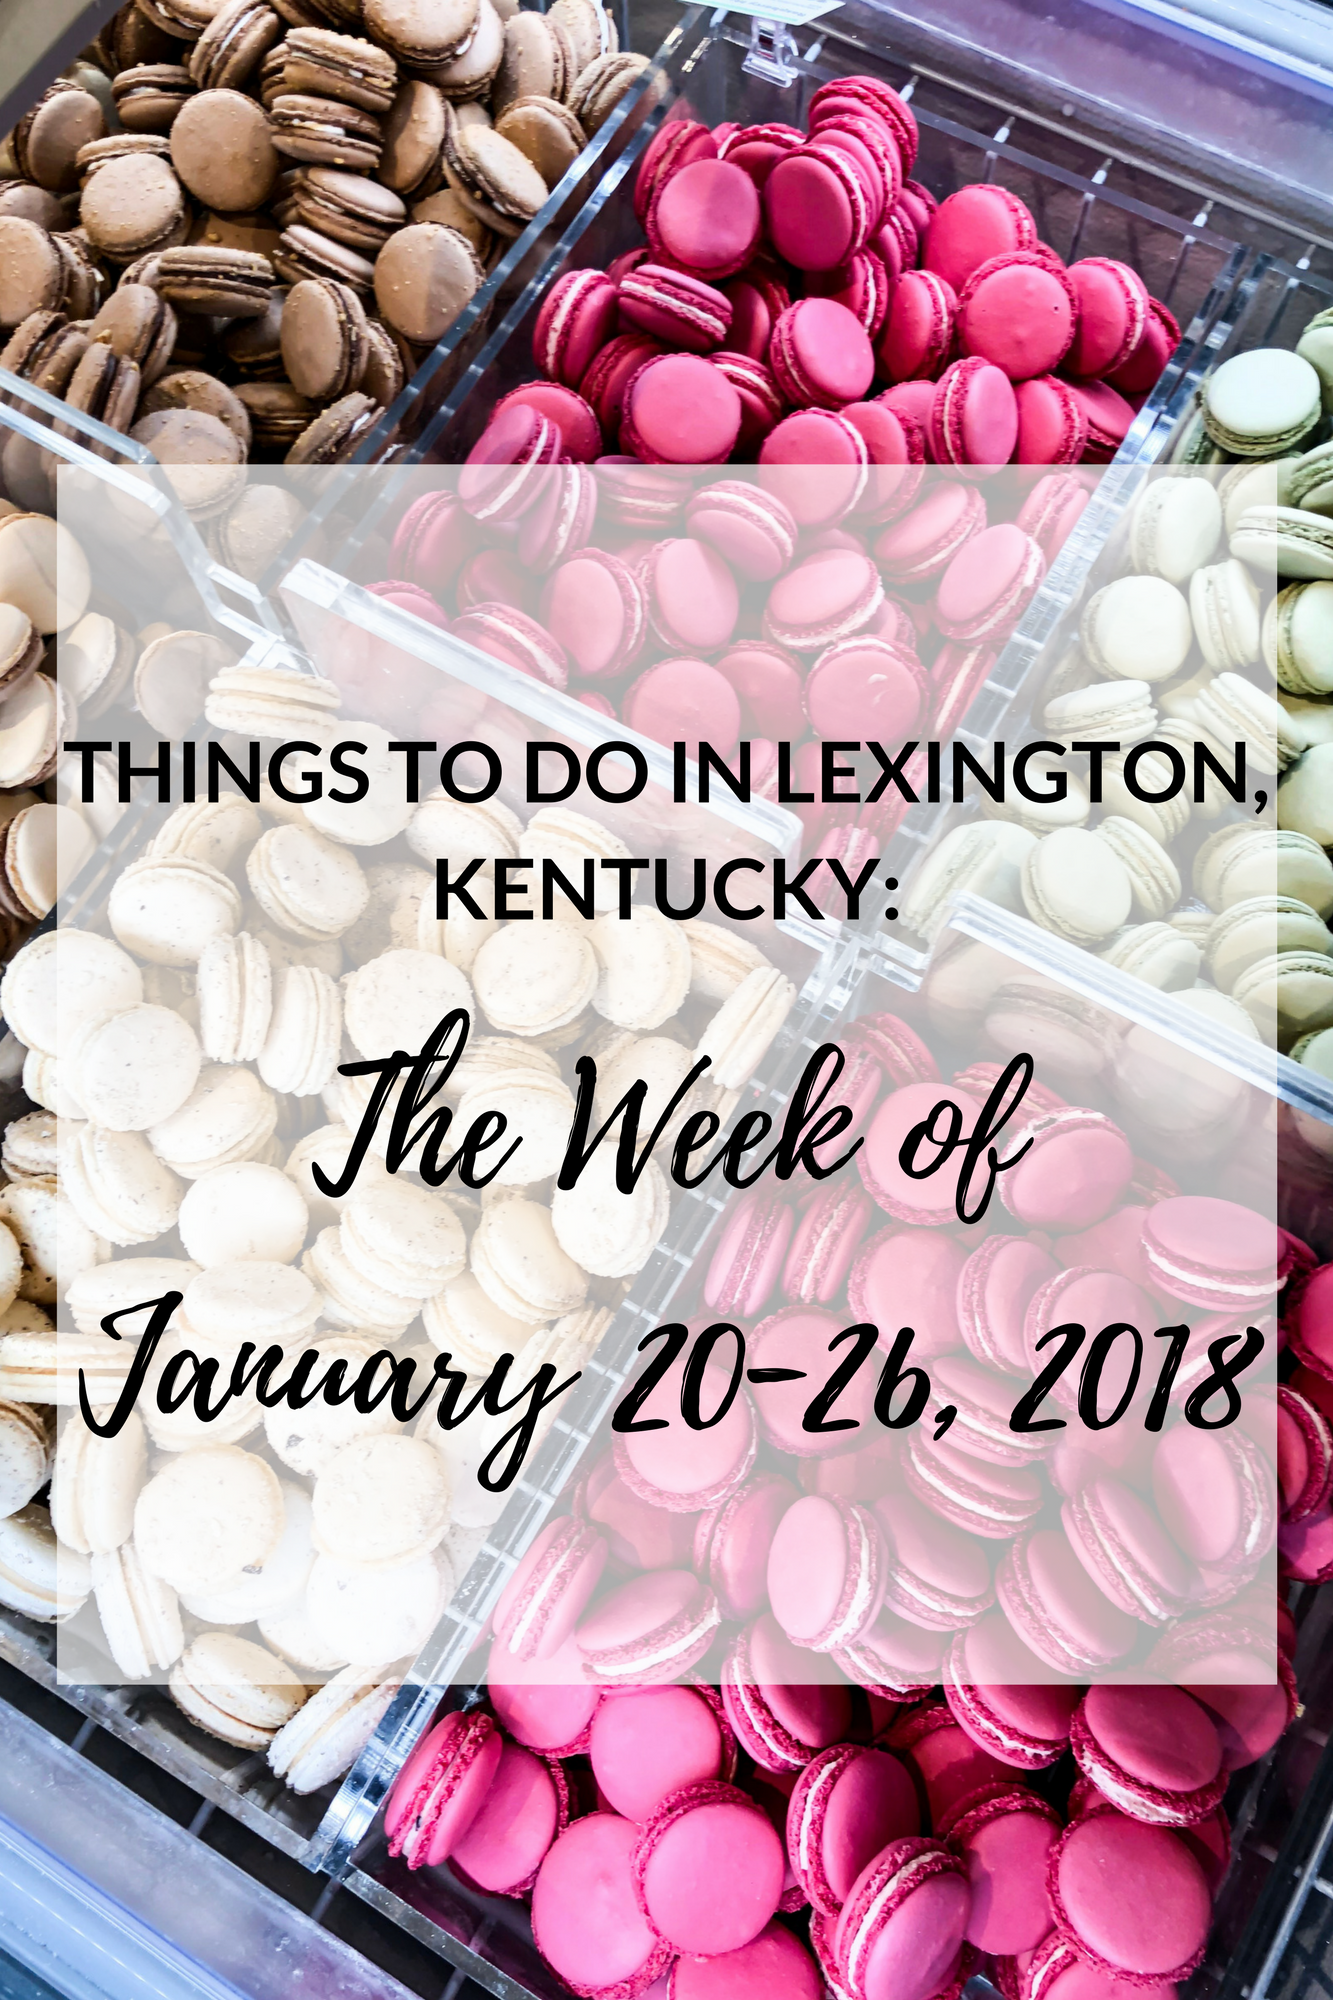 things to do in lexington kentucky january